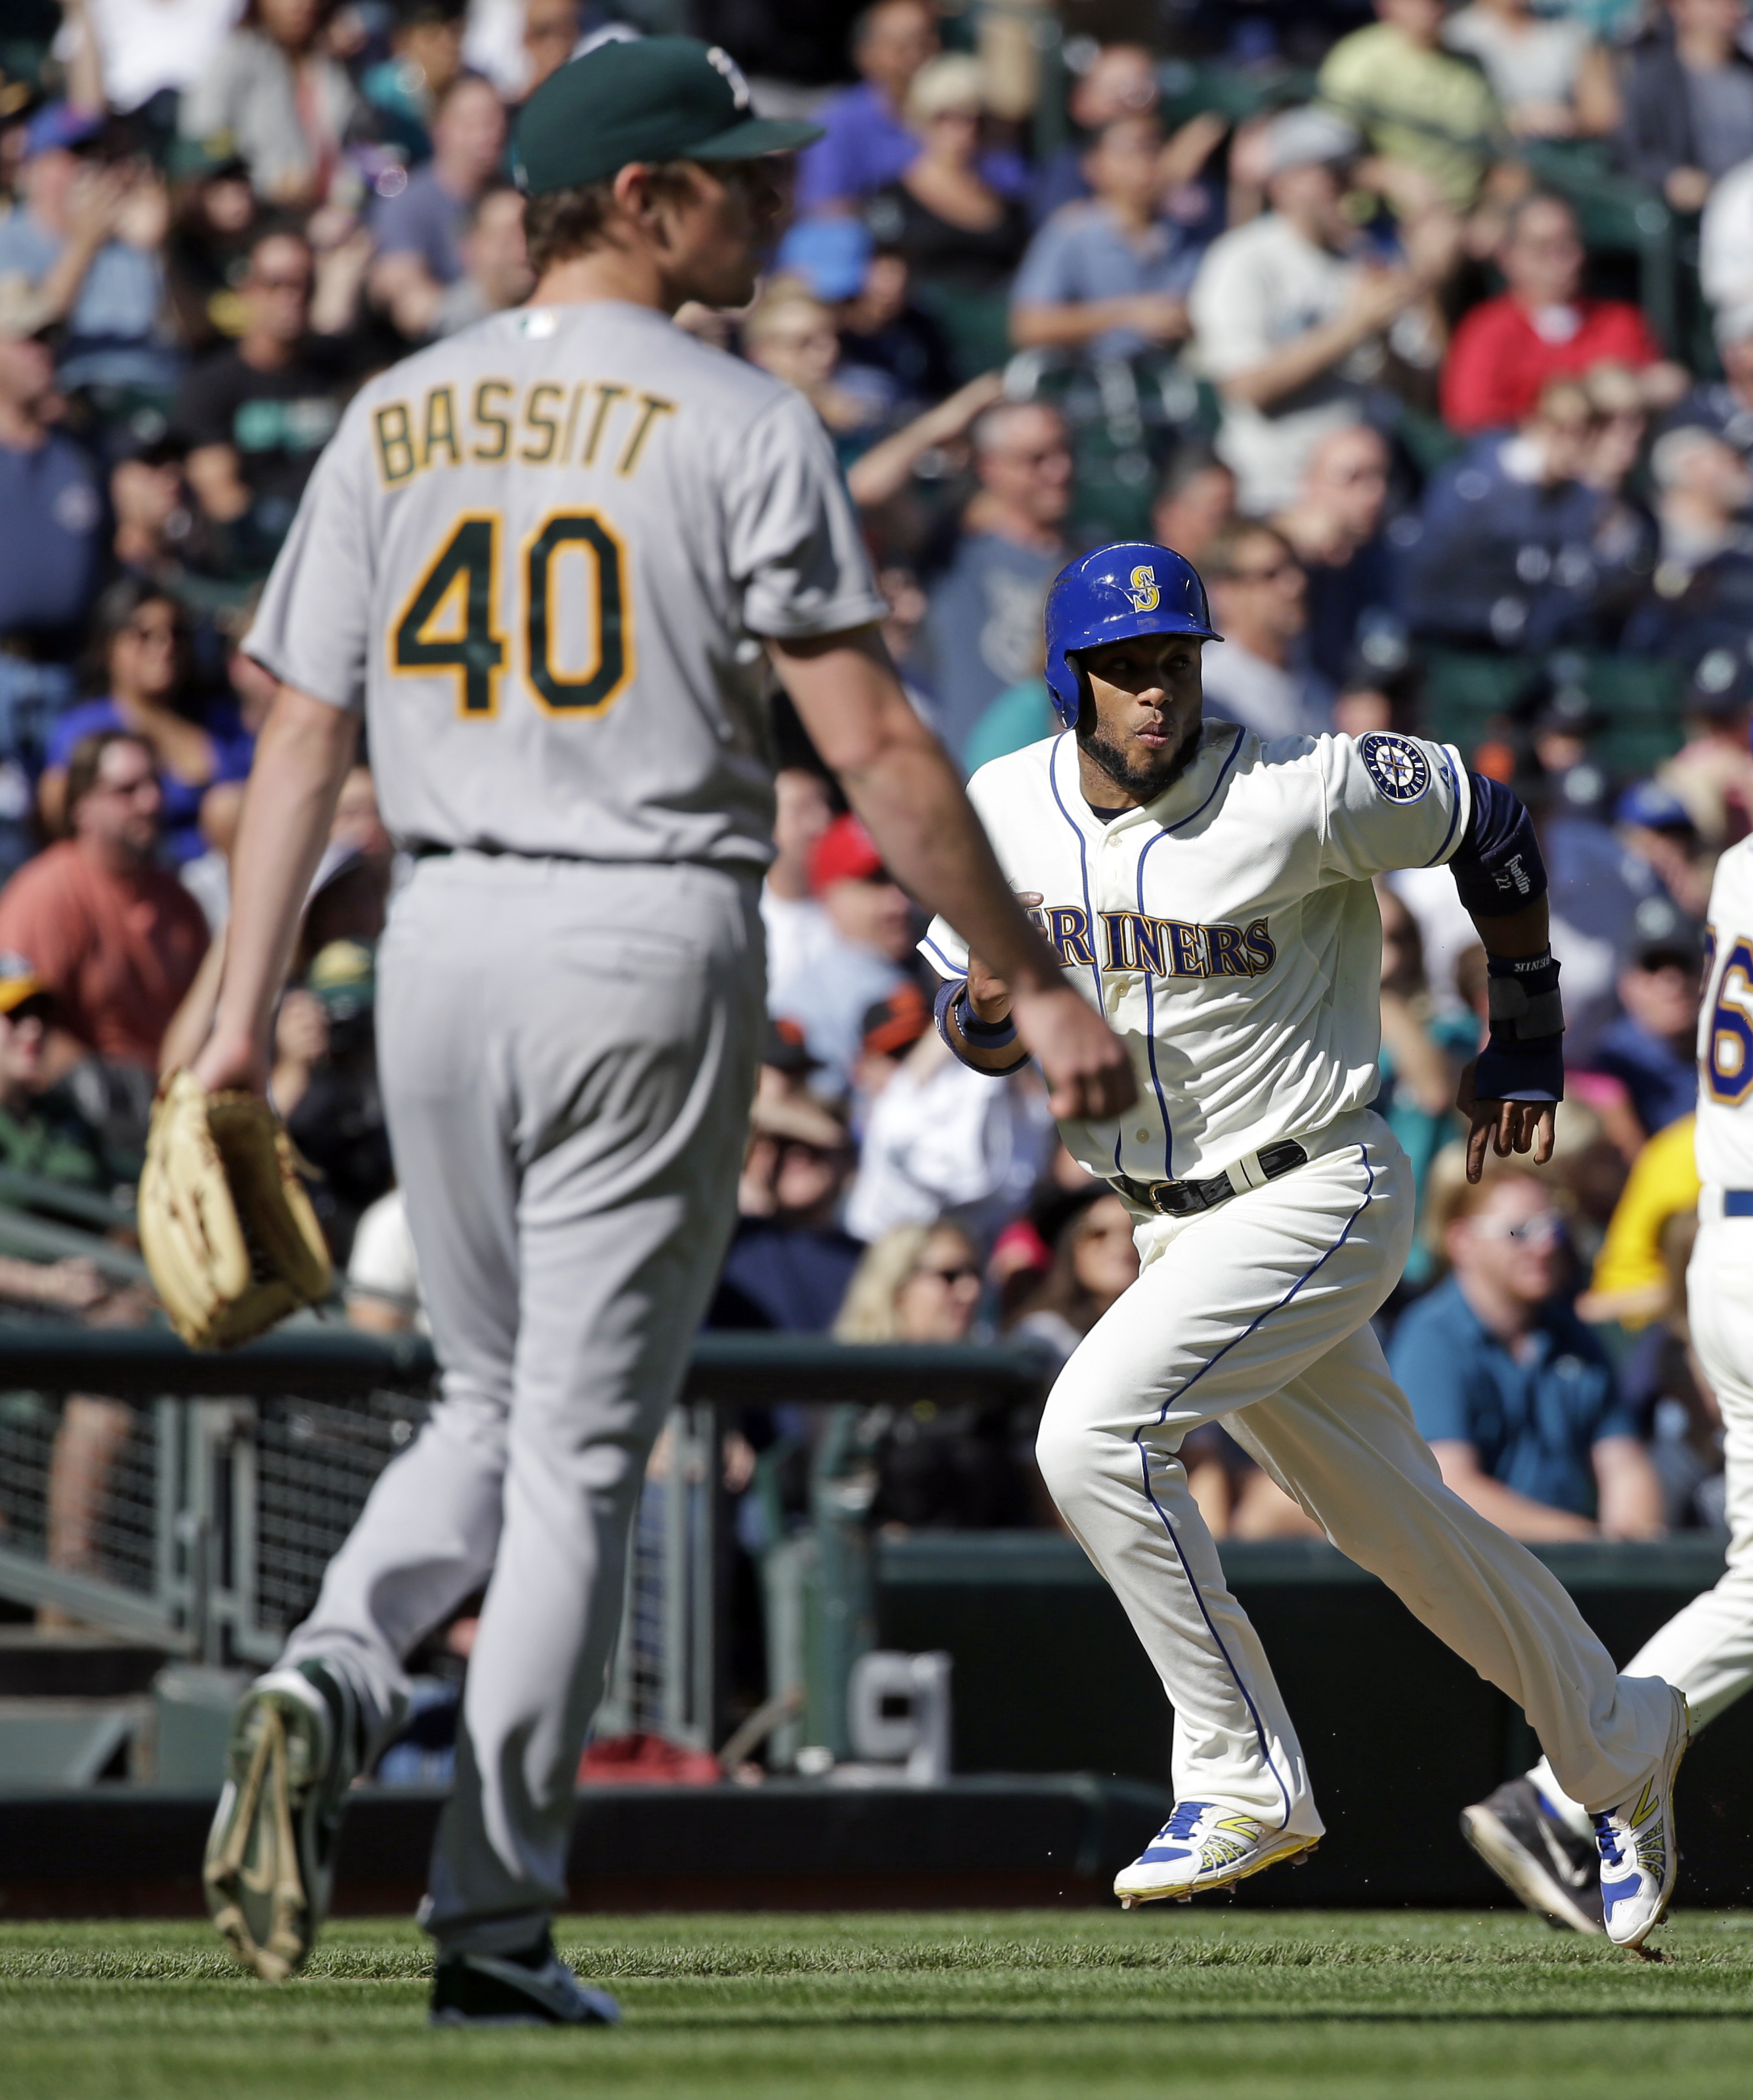 Seattle Mariners' Robinson Cano, right, heads home to score on a sacrifice fly by Logan Morrison as Oakland Athletics starting pitcher Chris Bassitt (40) looks on in the fourth inning of a baseball game Sunday, Oct. 4, 2015, in Seattle. (AP Photo/Elaine T